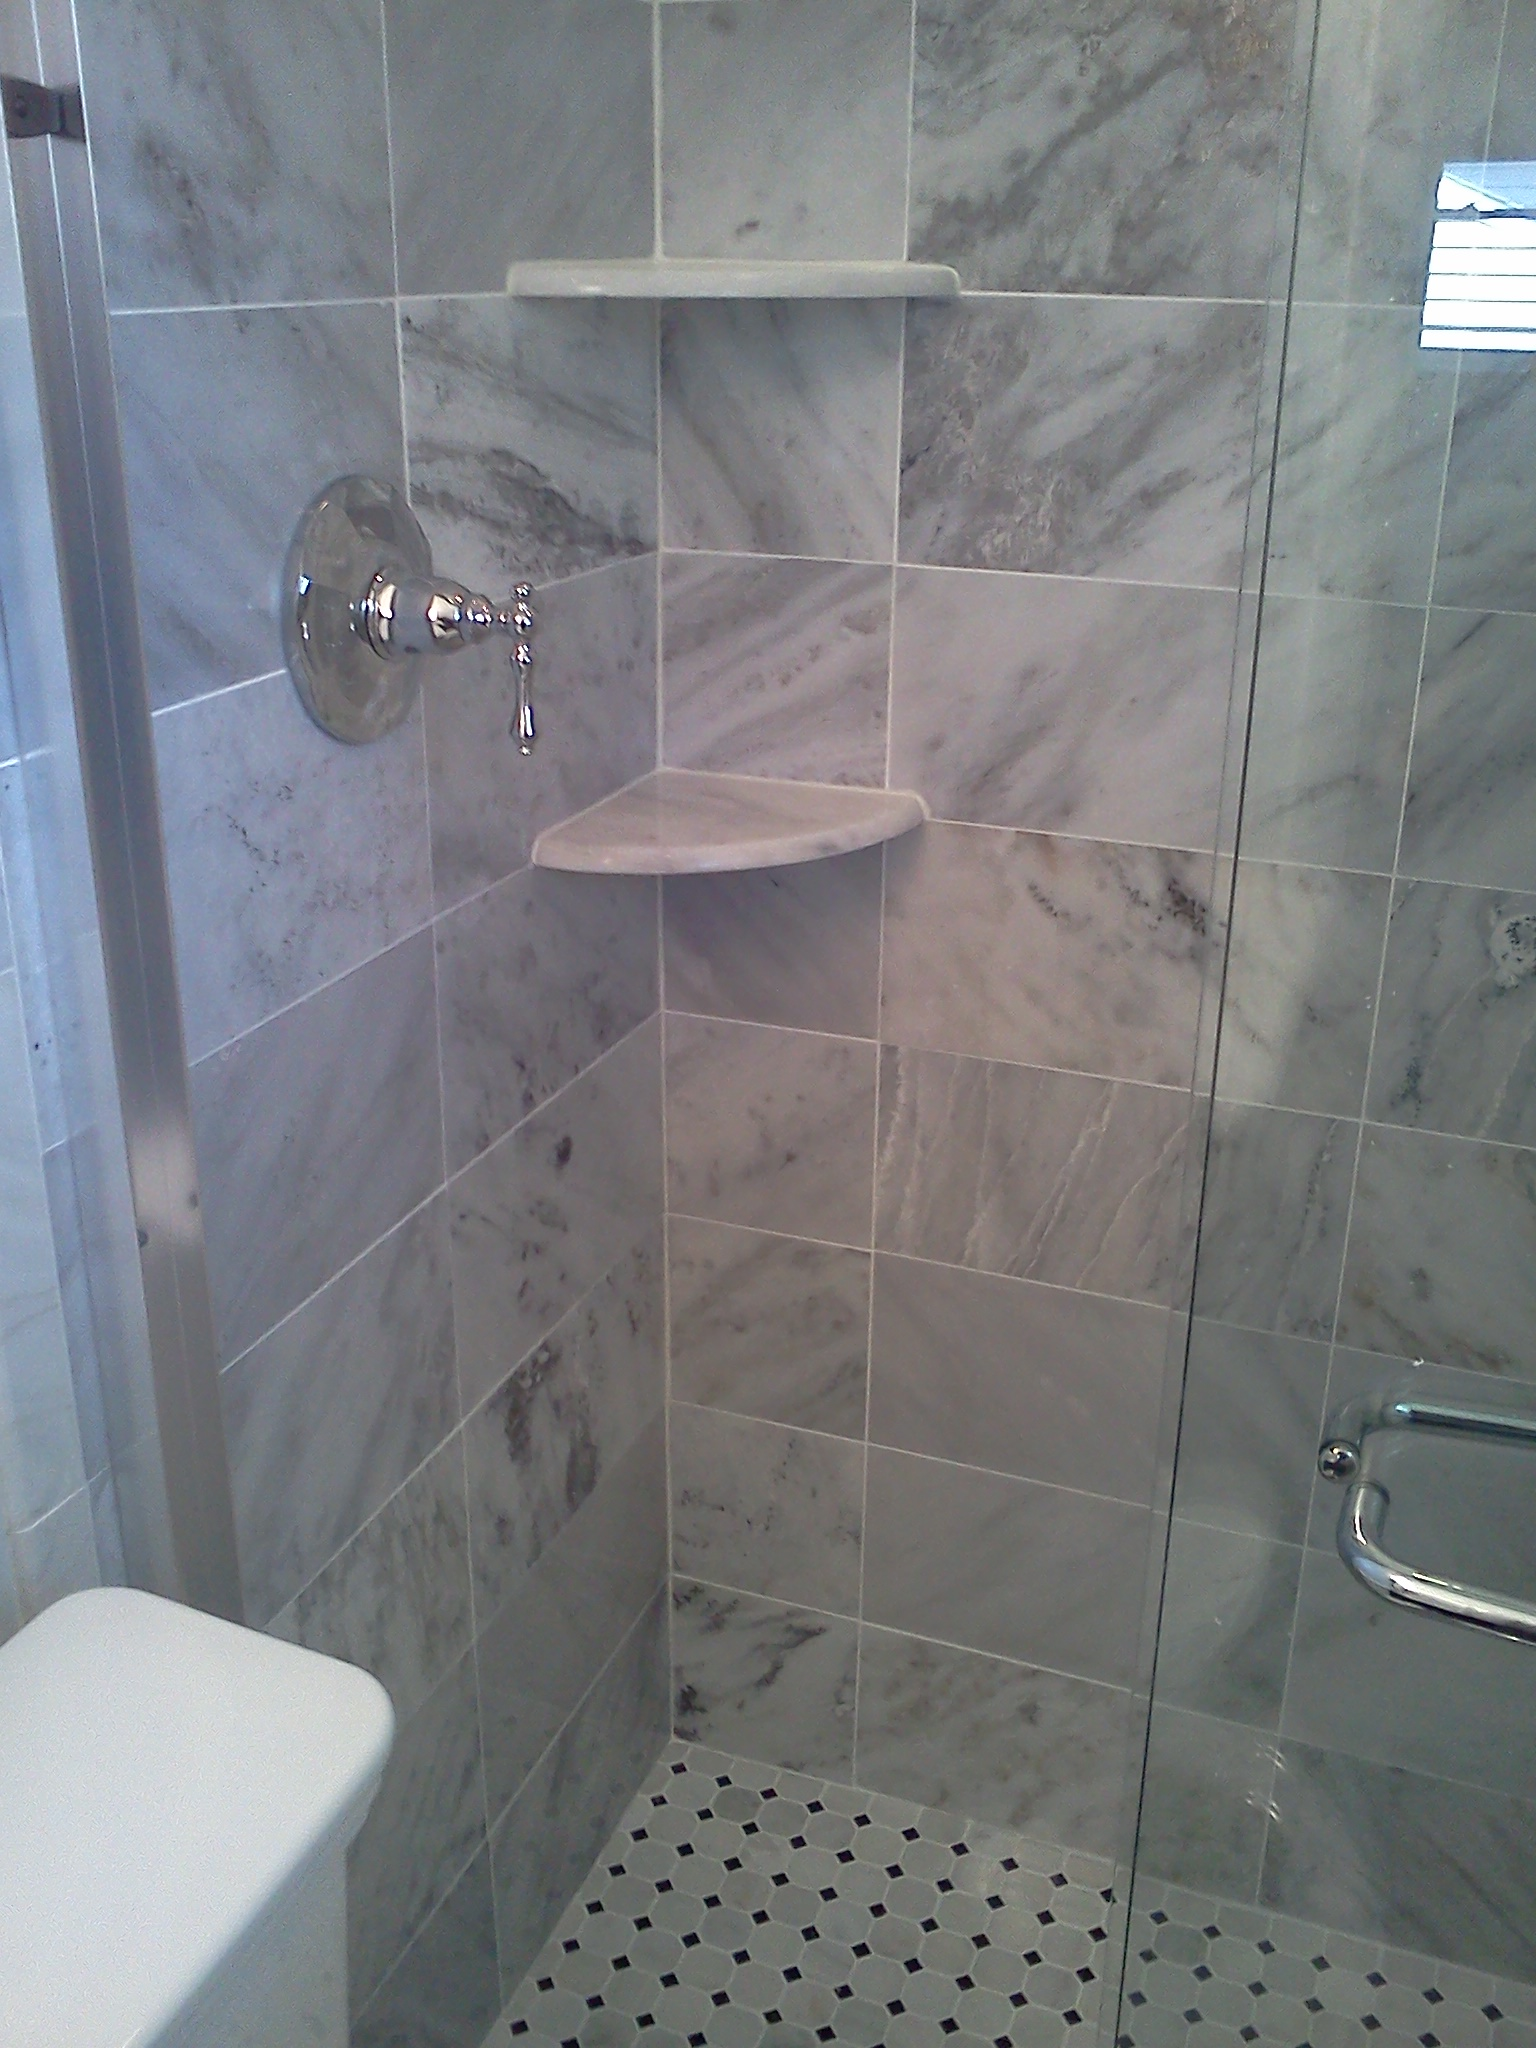 Plumbing Services in Frederick, MD